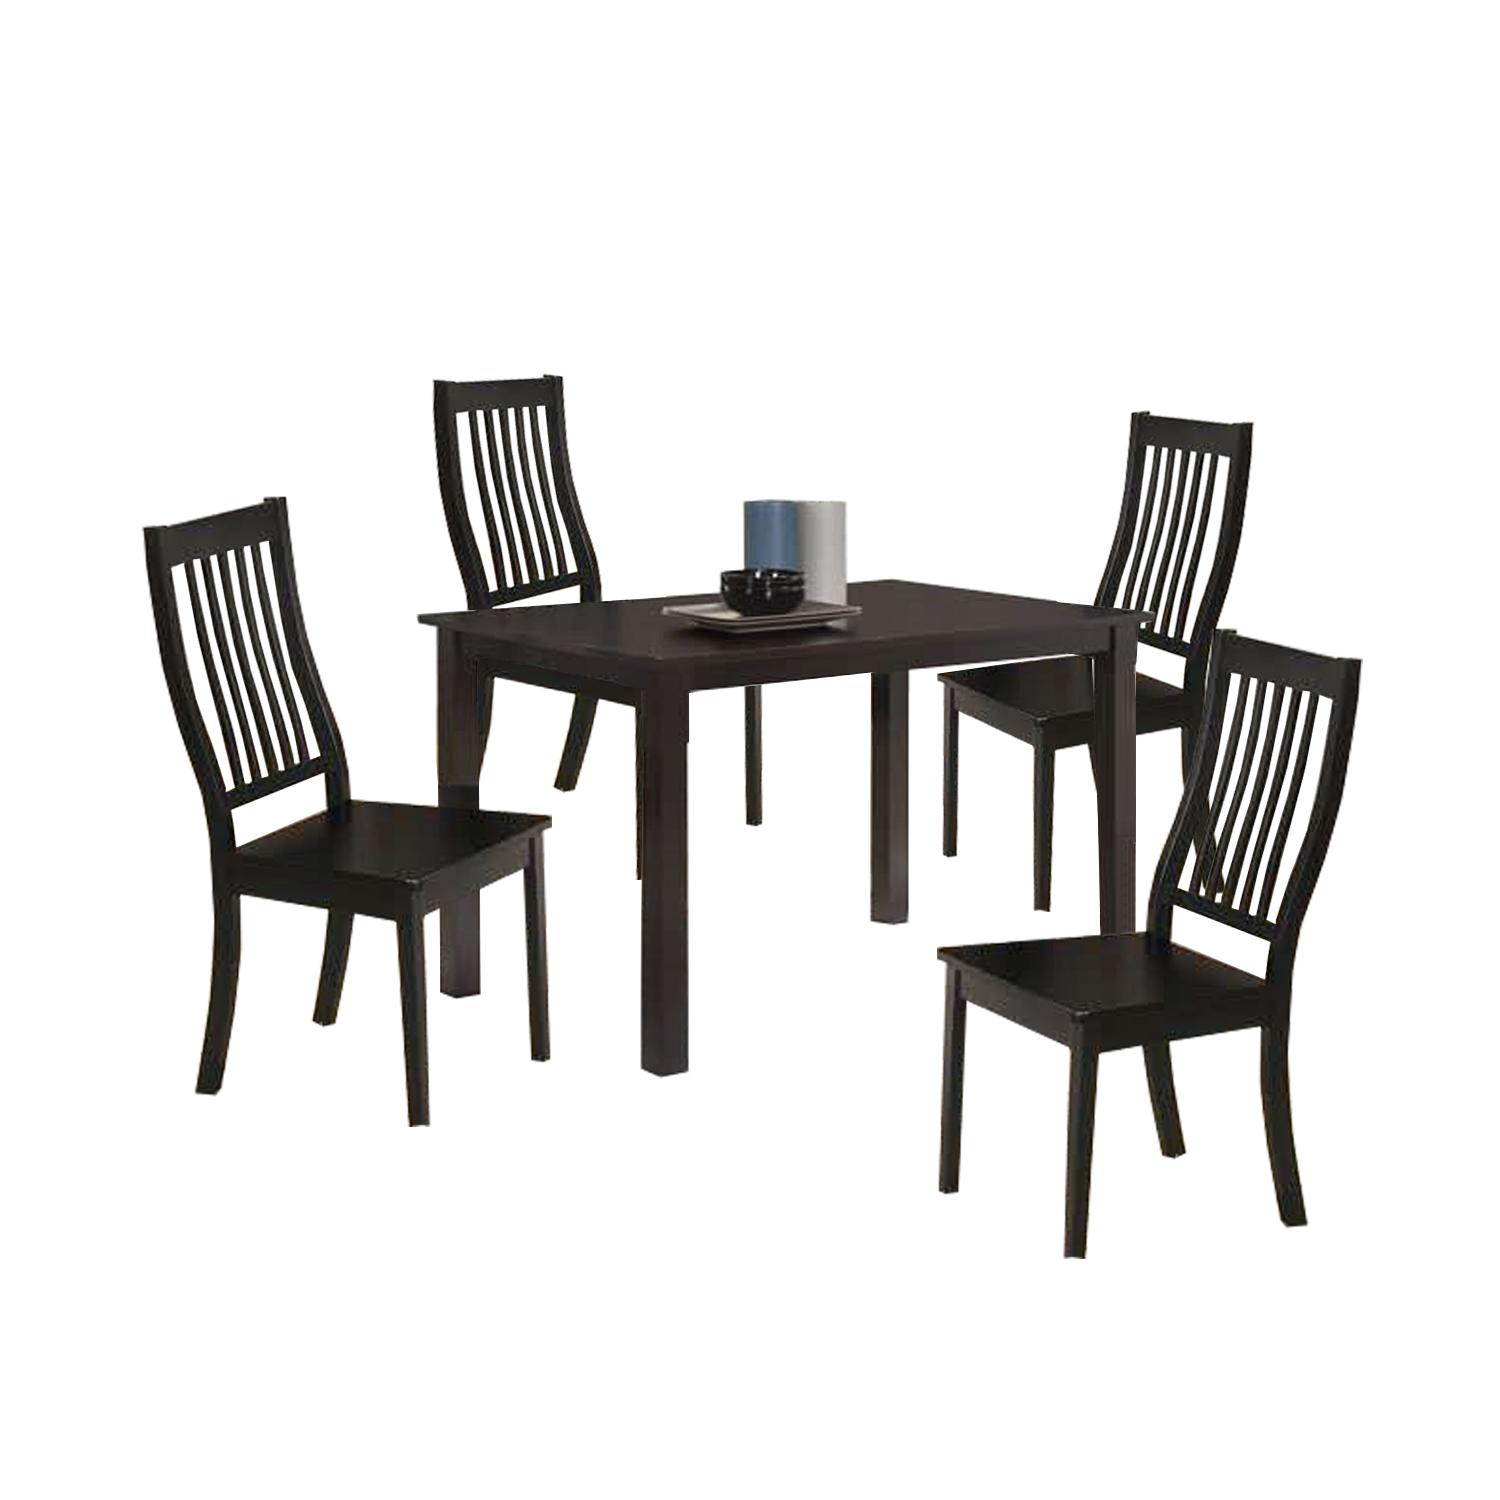 LIVING MALL_Woody Dining Set_1+4_FREE DELIVERY